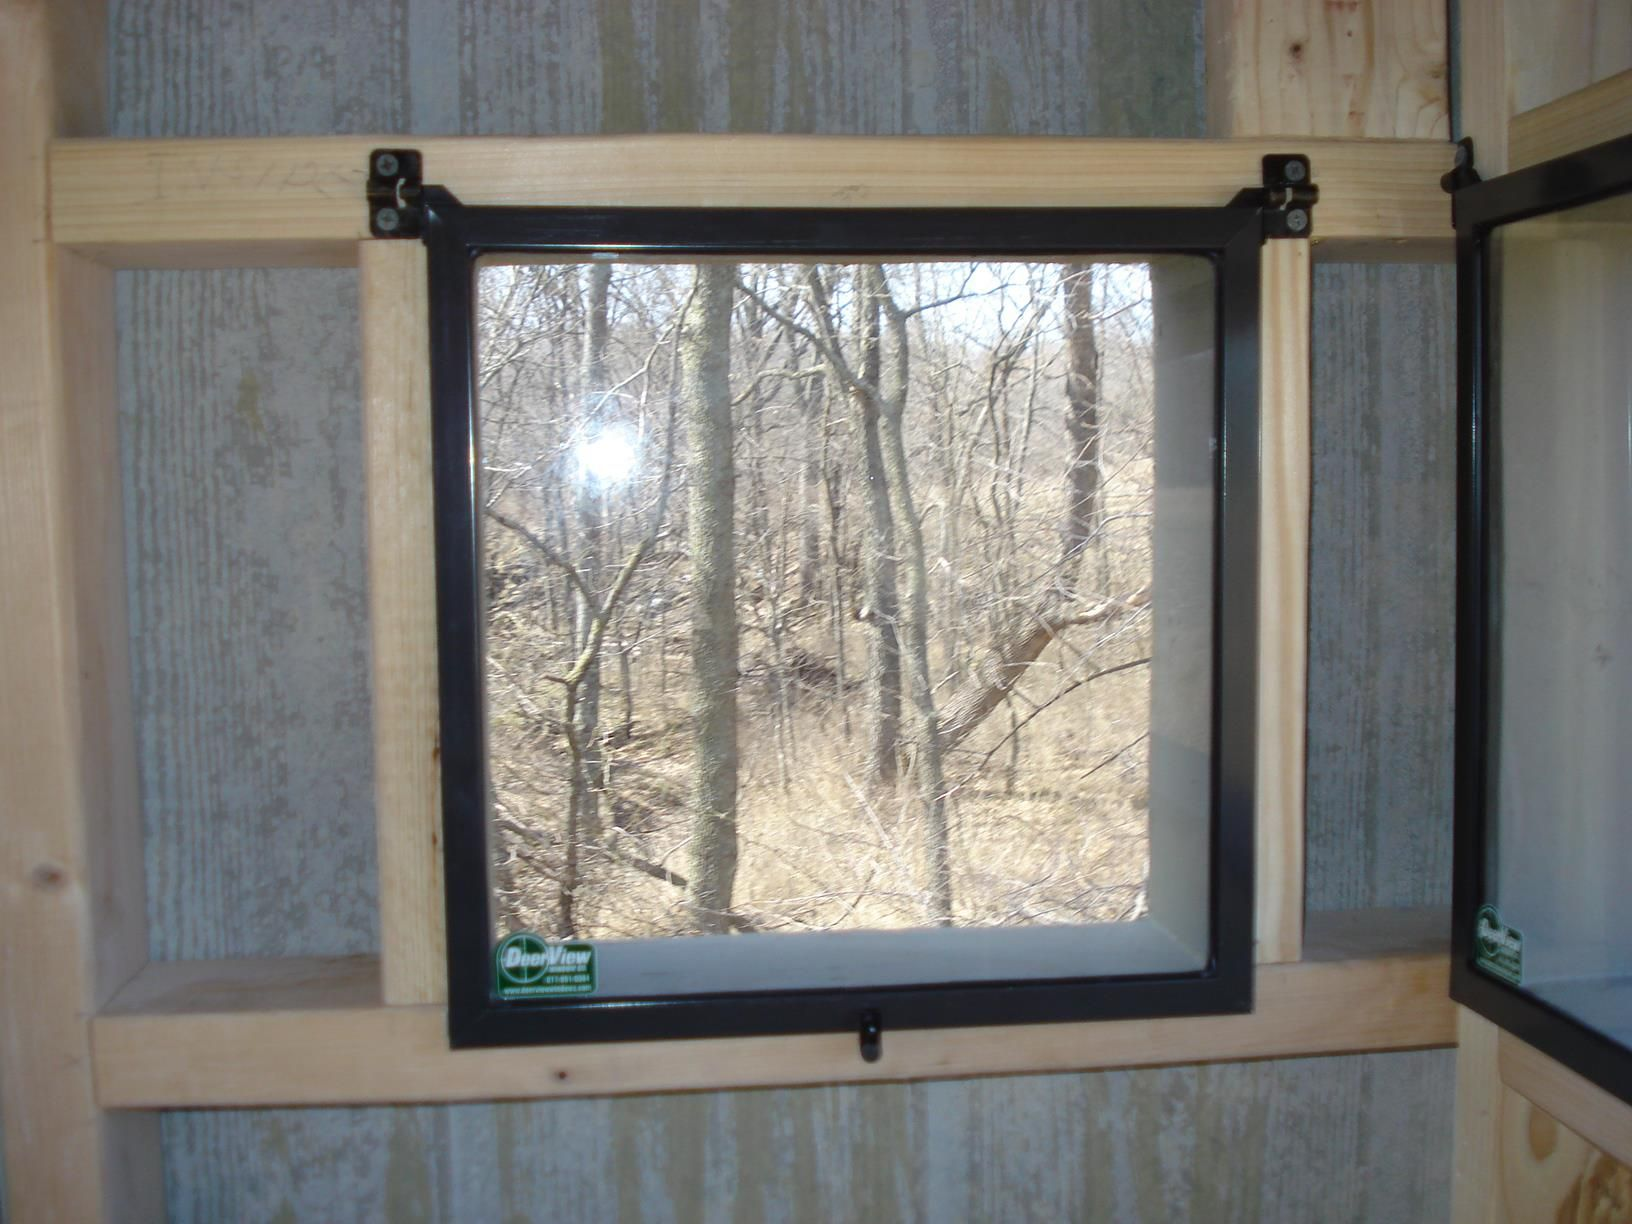 blind blinds bow for ideas deer vertical of blindsbuy sale size plexiglass full and box windows marvelous blindsbow hunting